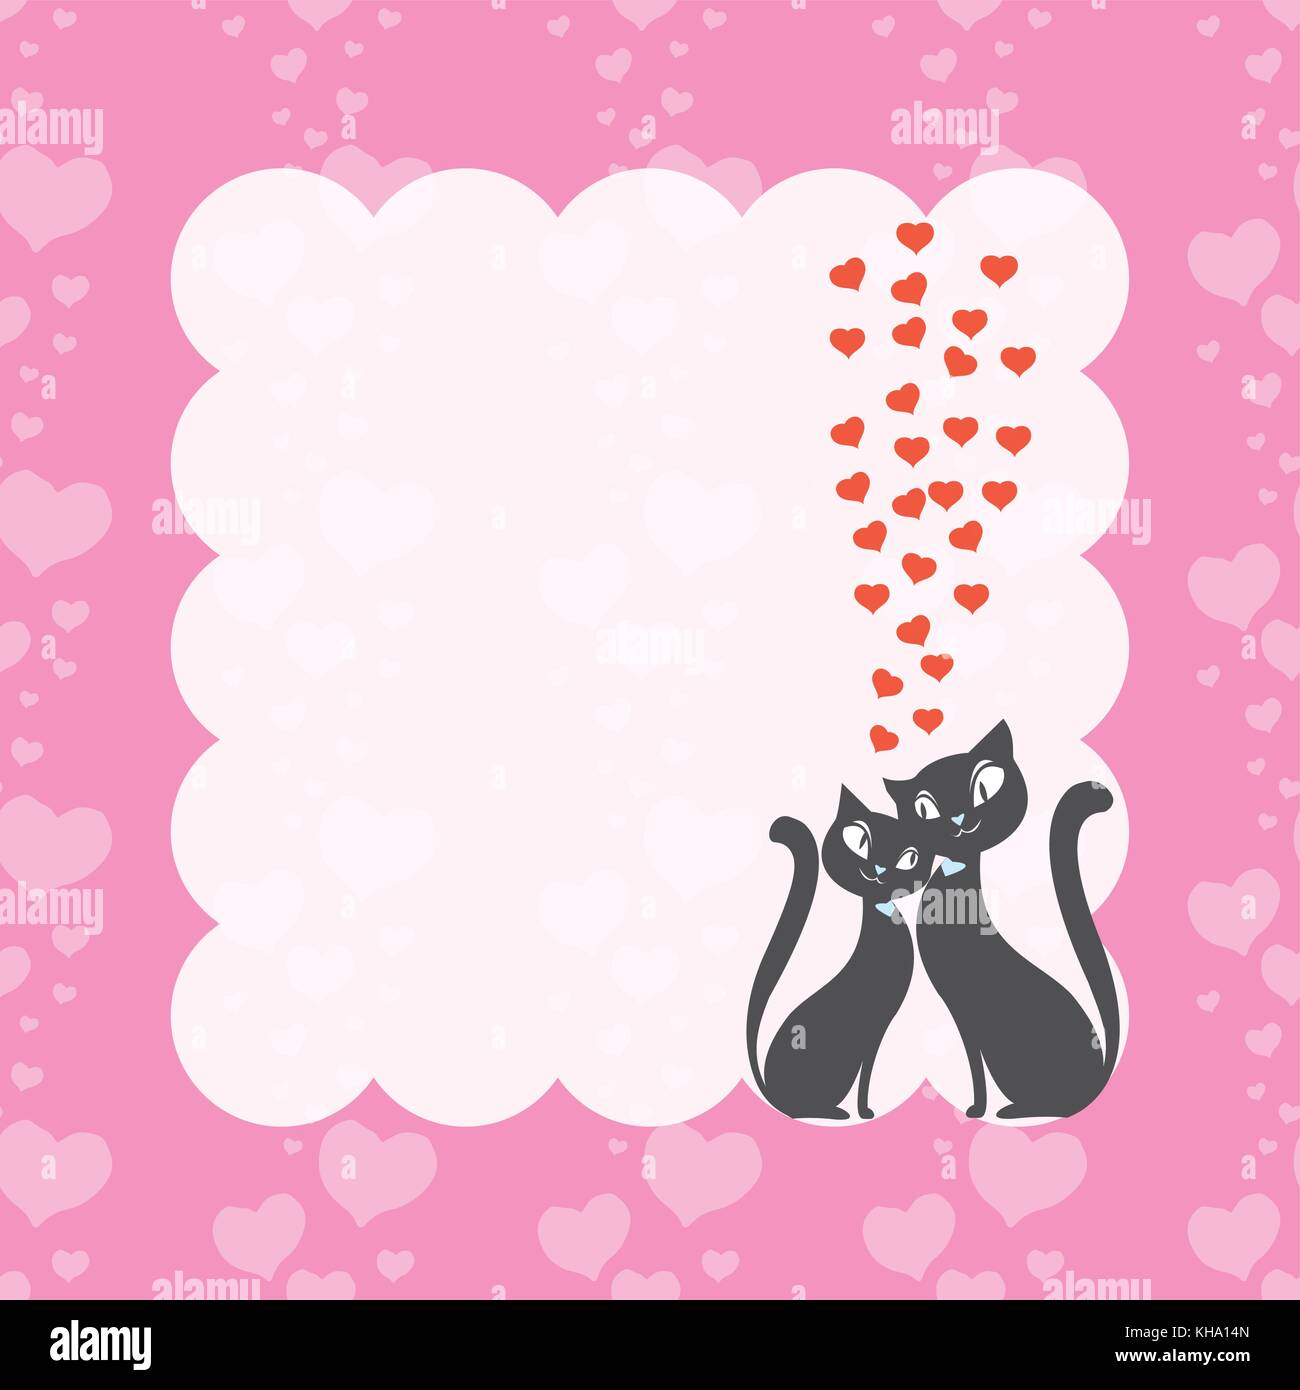 Couple love cats and frame with hearts seamless pattern Stock Vector ...